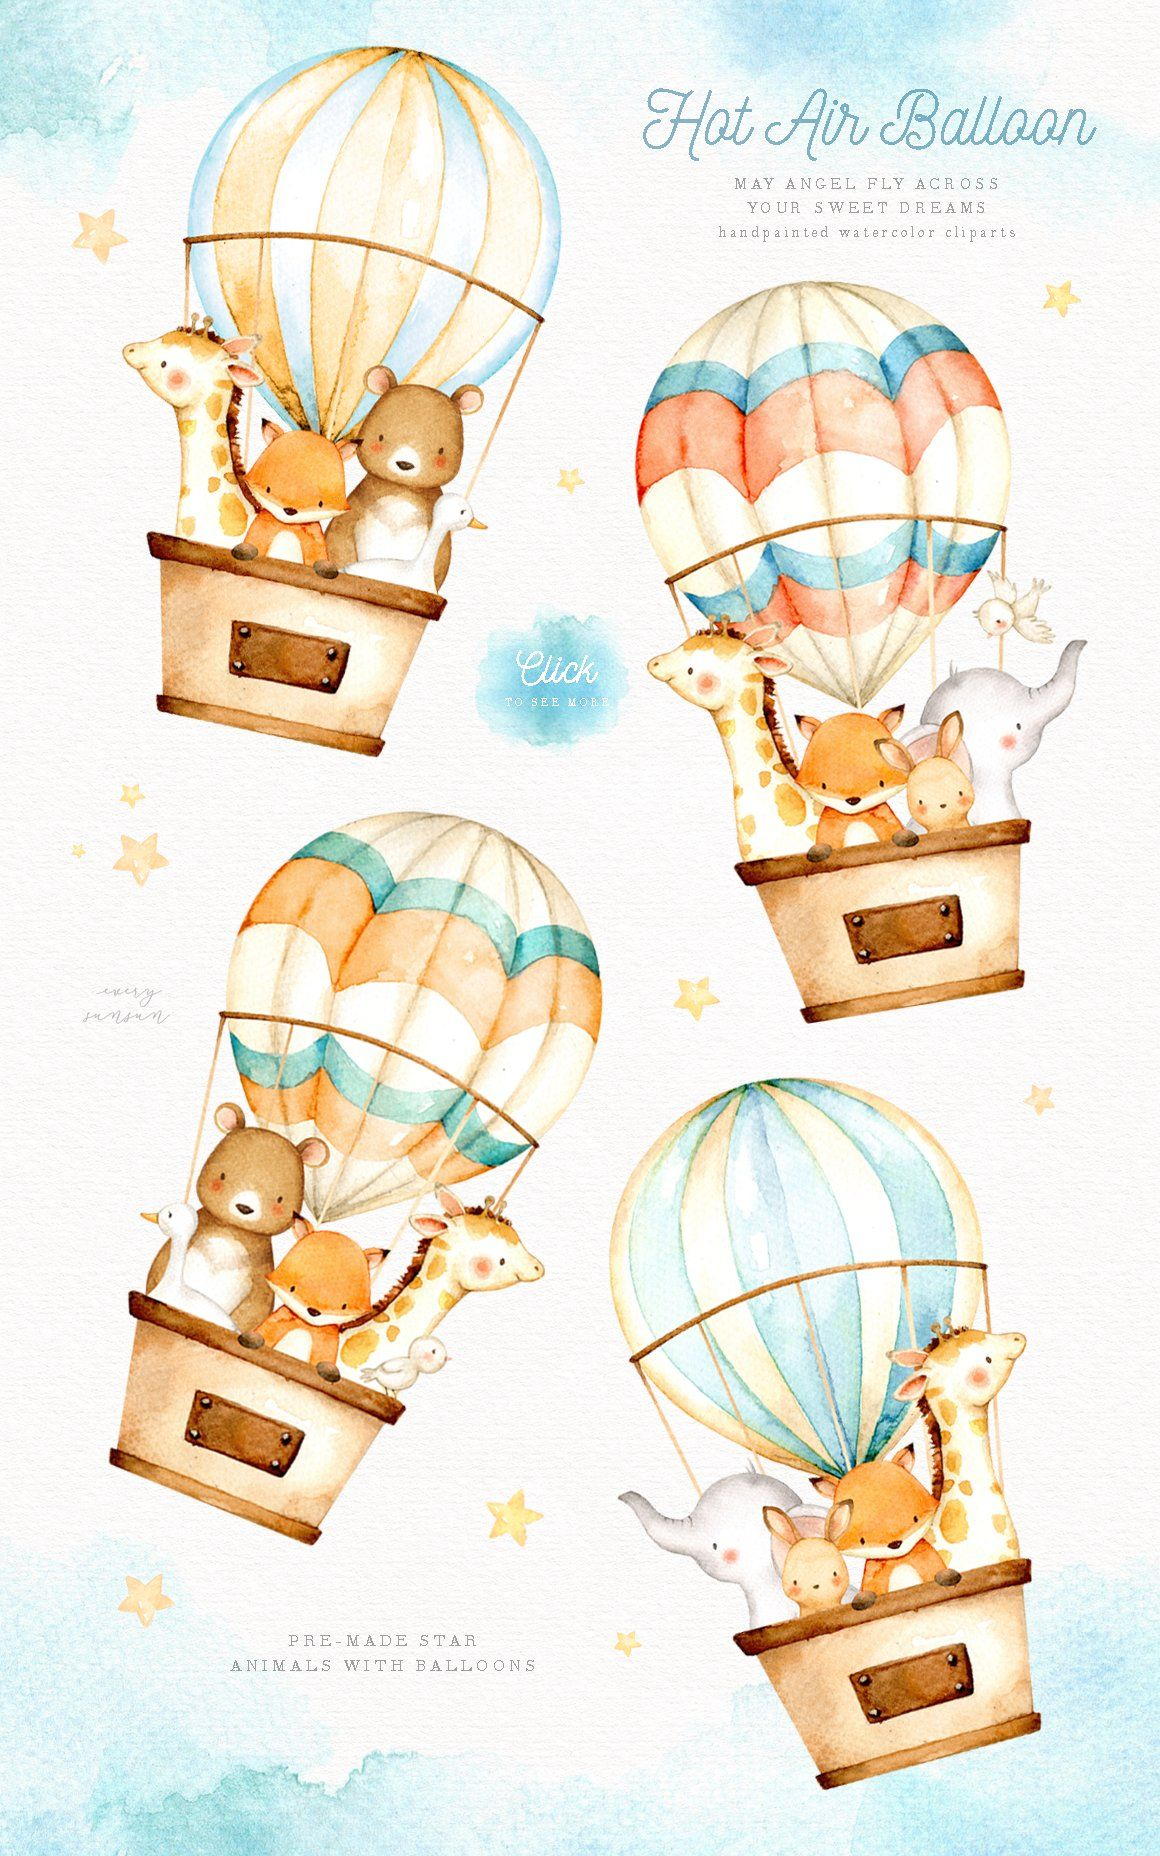 Hot Air Balloon Watercolor Clipart Animais De Aquarela Selos